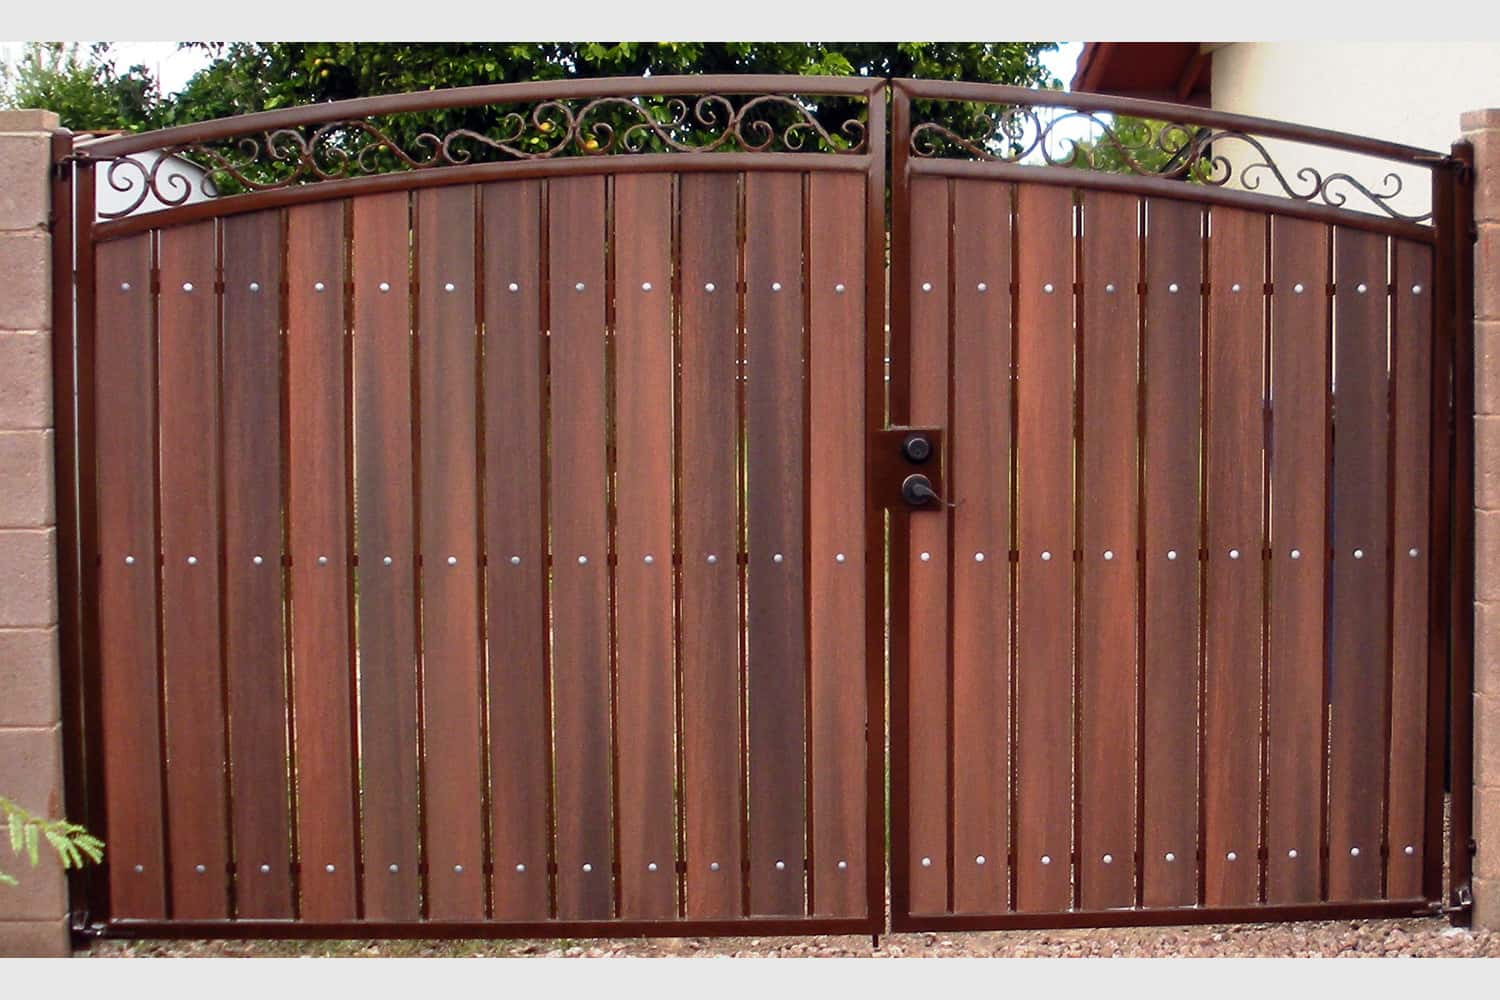 Decorative Arched RV Gate with Rust and Redwood